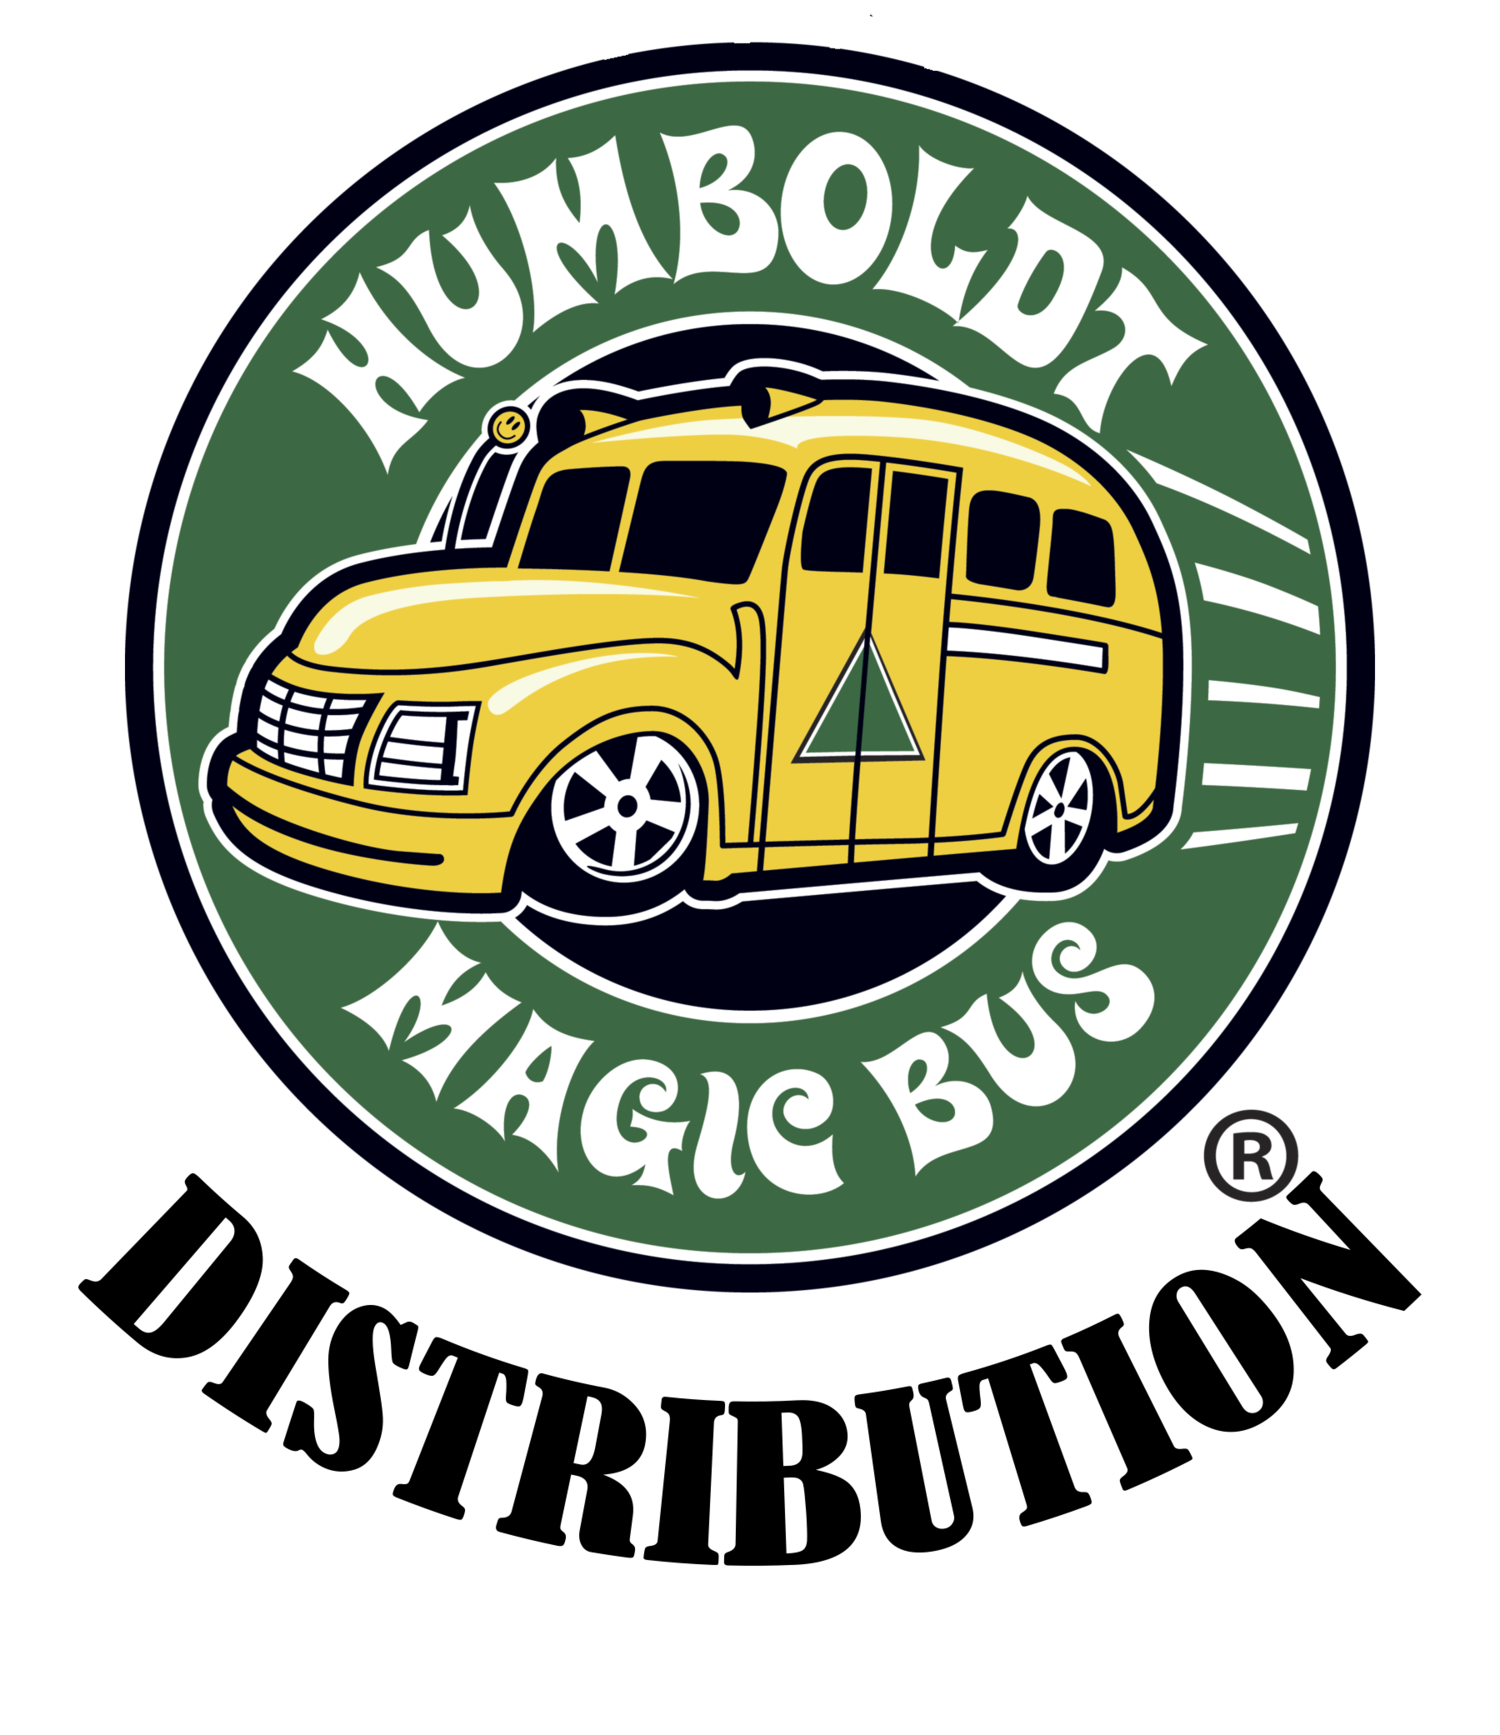 Humboldt Magic Bus